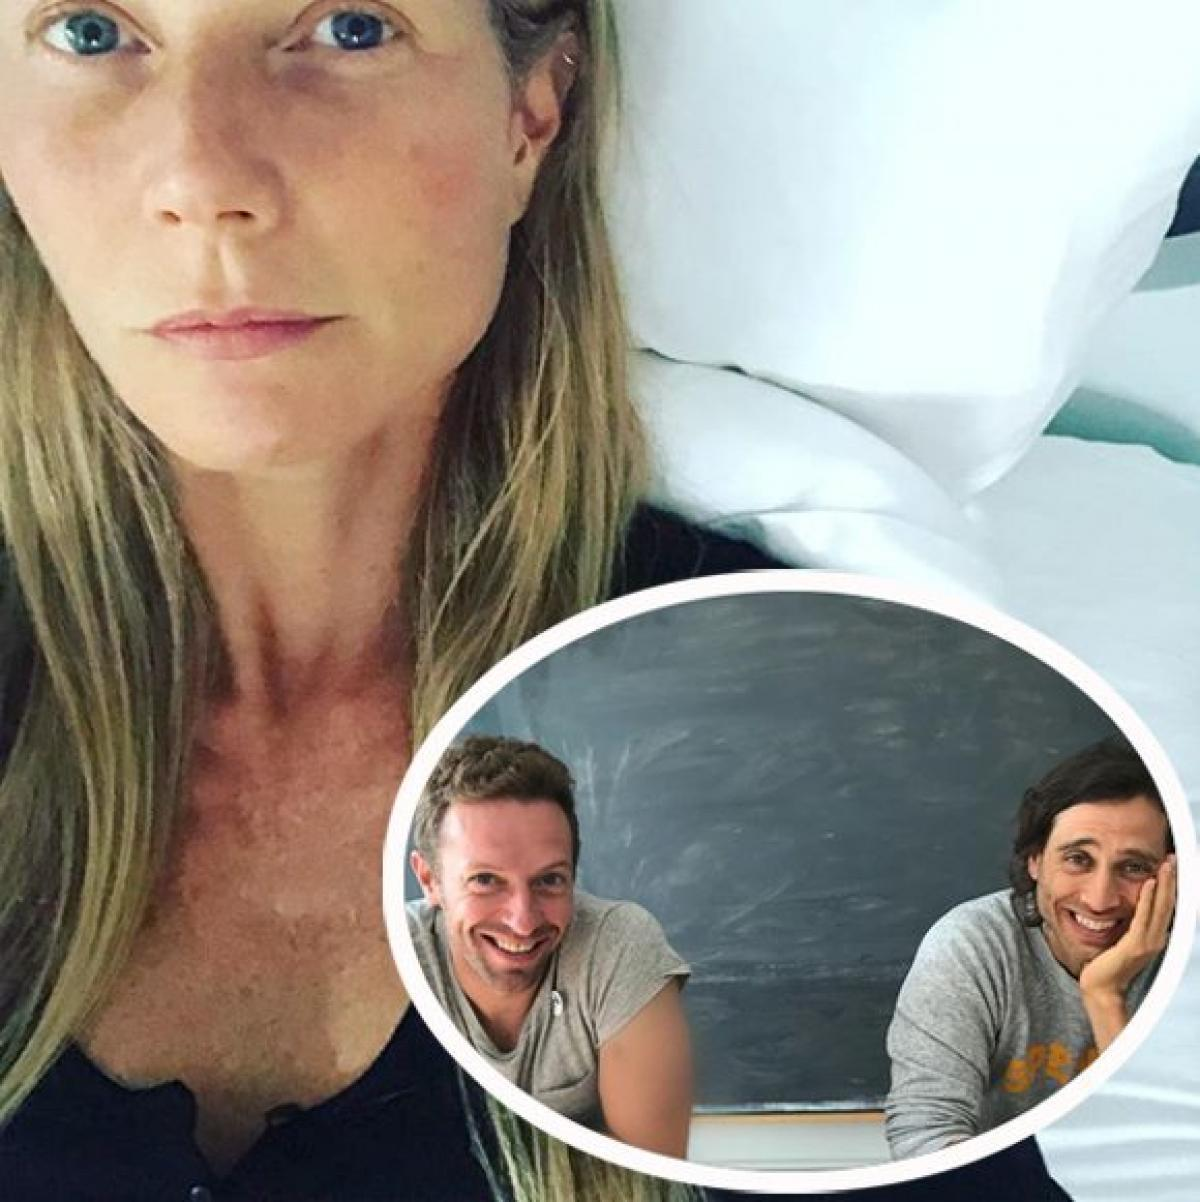 Gwyneth Paltrow Says She & Ex Chris Martin Were 'Meant To Be Together & Have Our Kids'